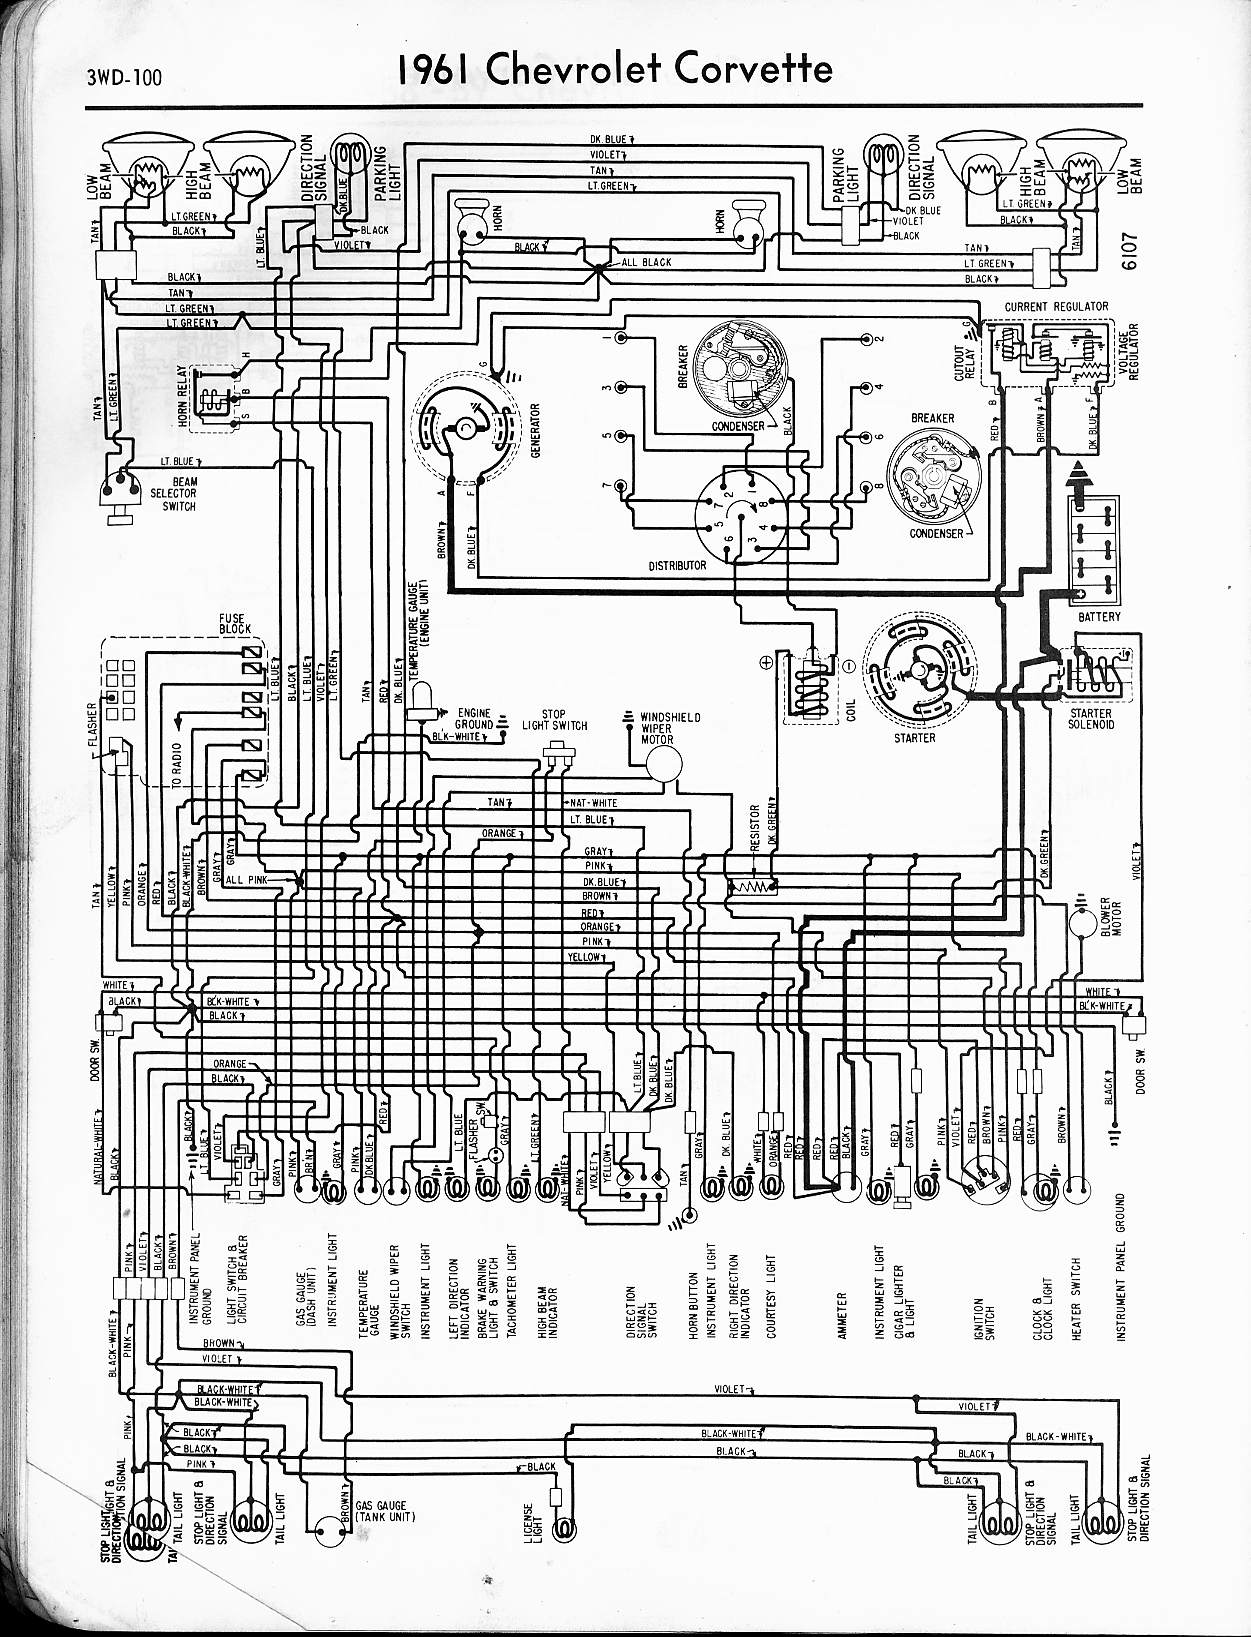 1950 chevy wiring diagram electrical diagrams forum u2022 rh jimmellon co uk